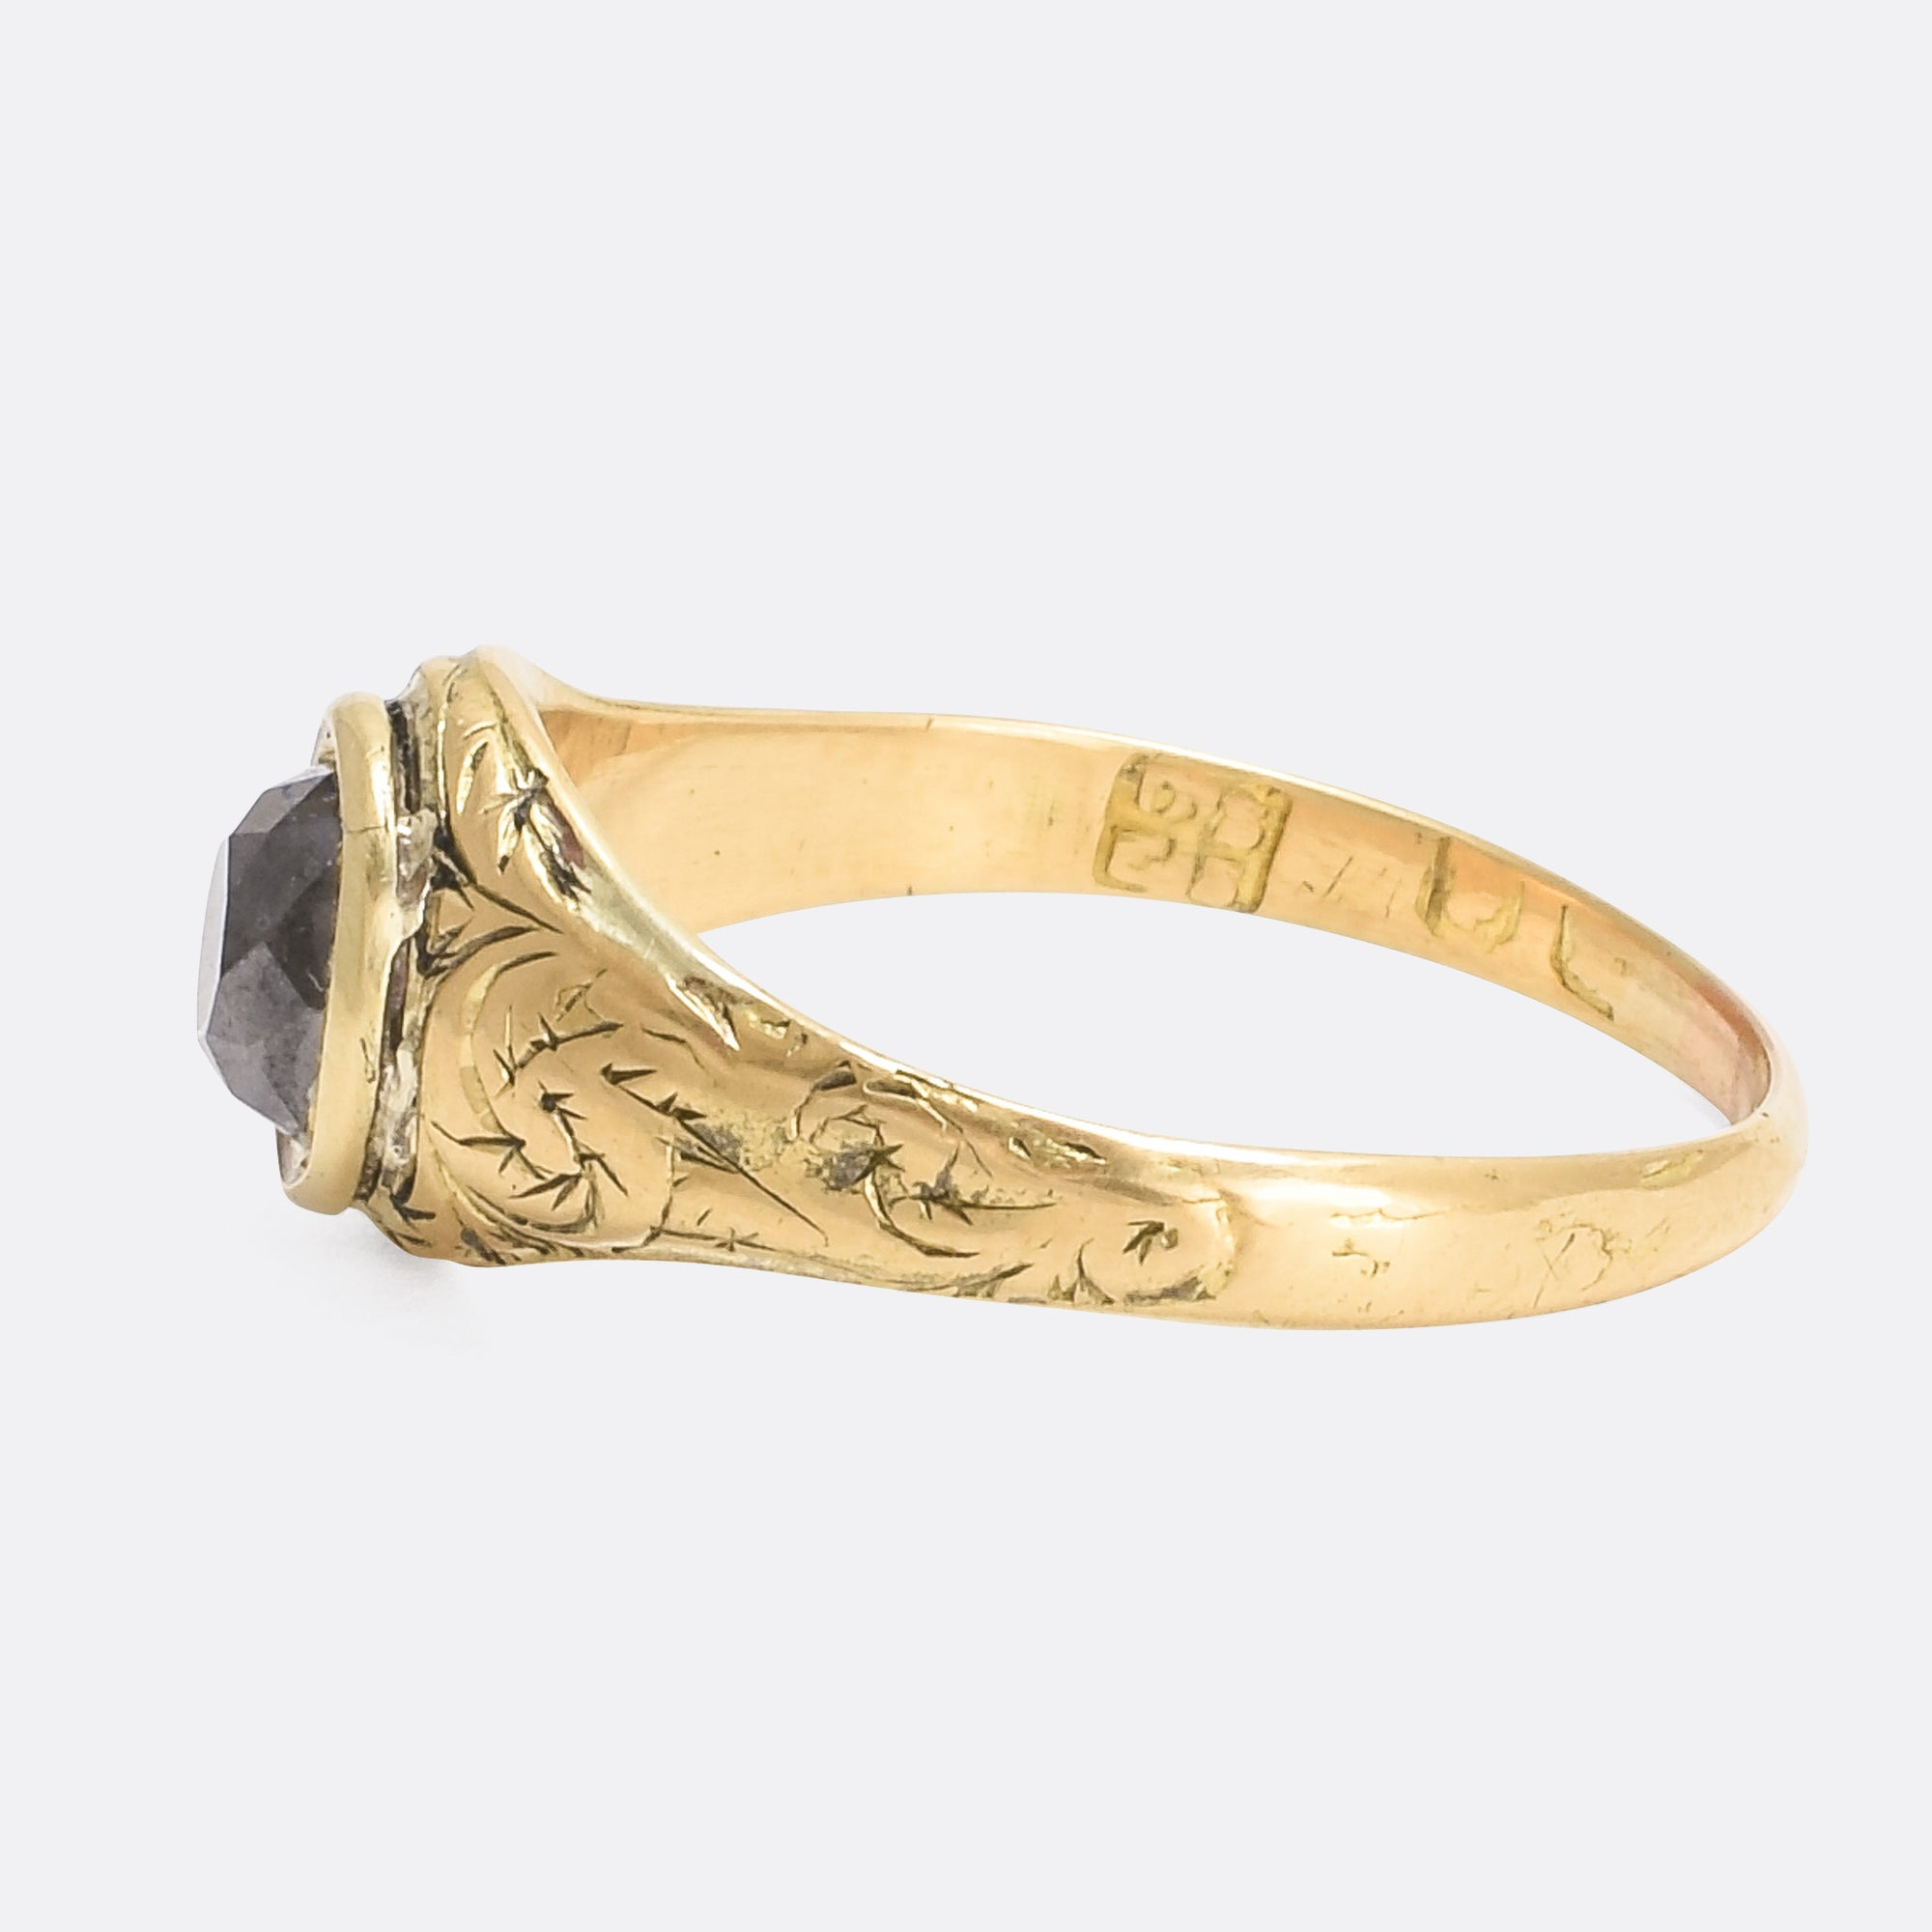 ring century of the carved ages through circa wedding rings mount img dublin engagement weldons